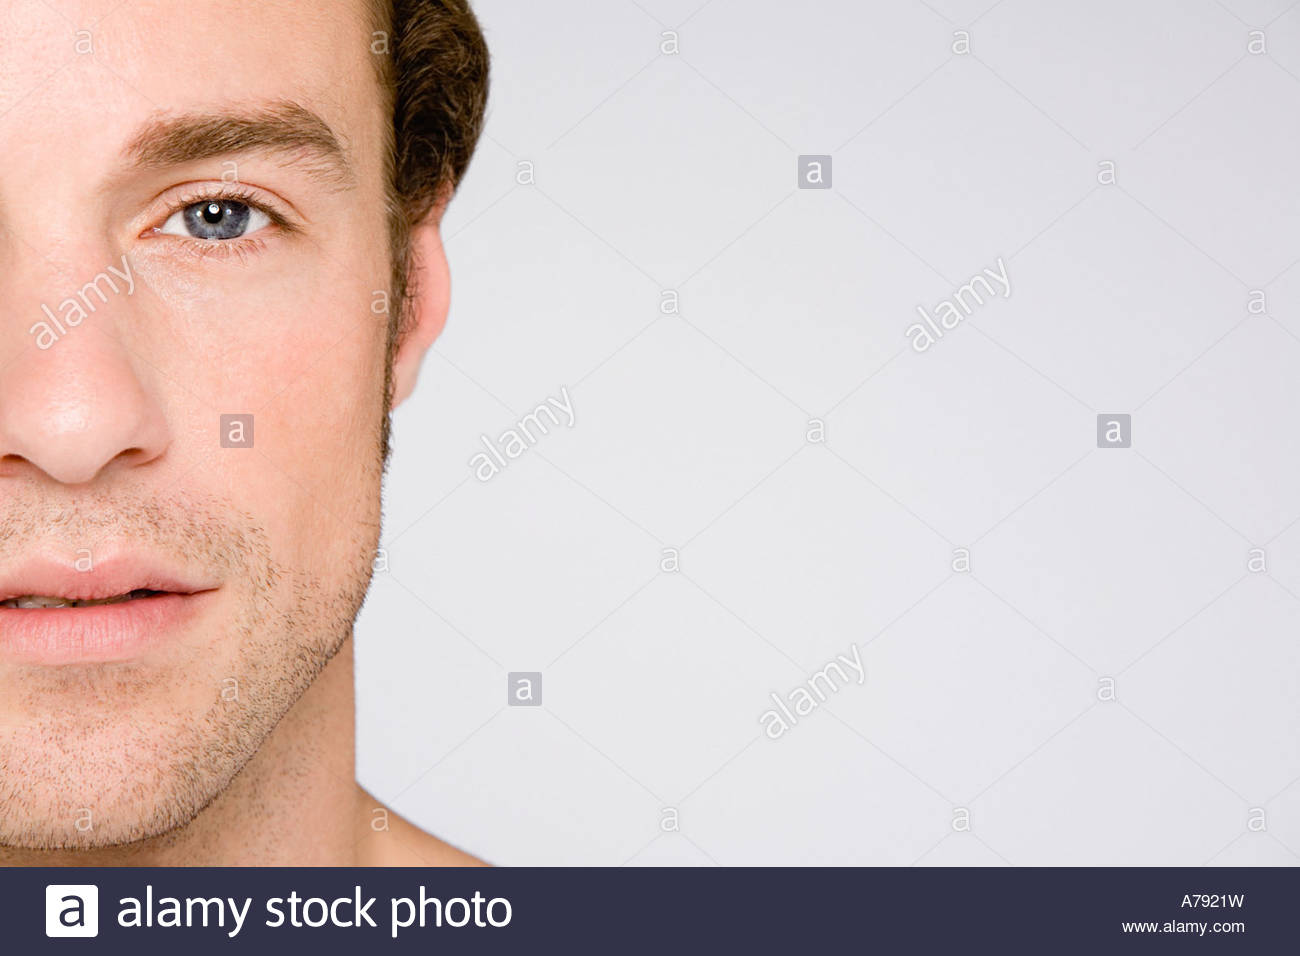 Cropped portrait of a young man - Stock Image